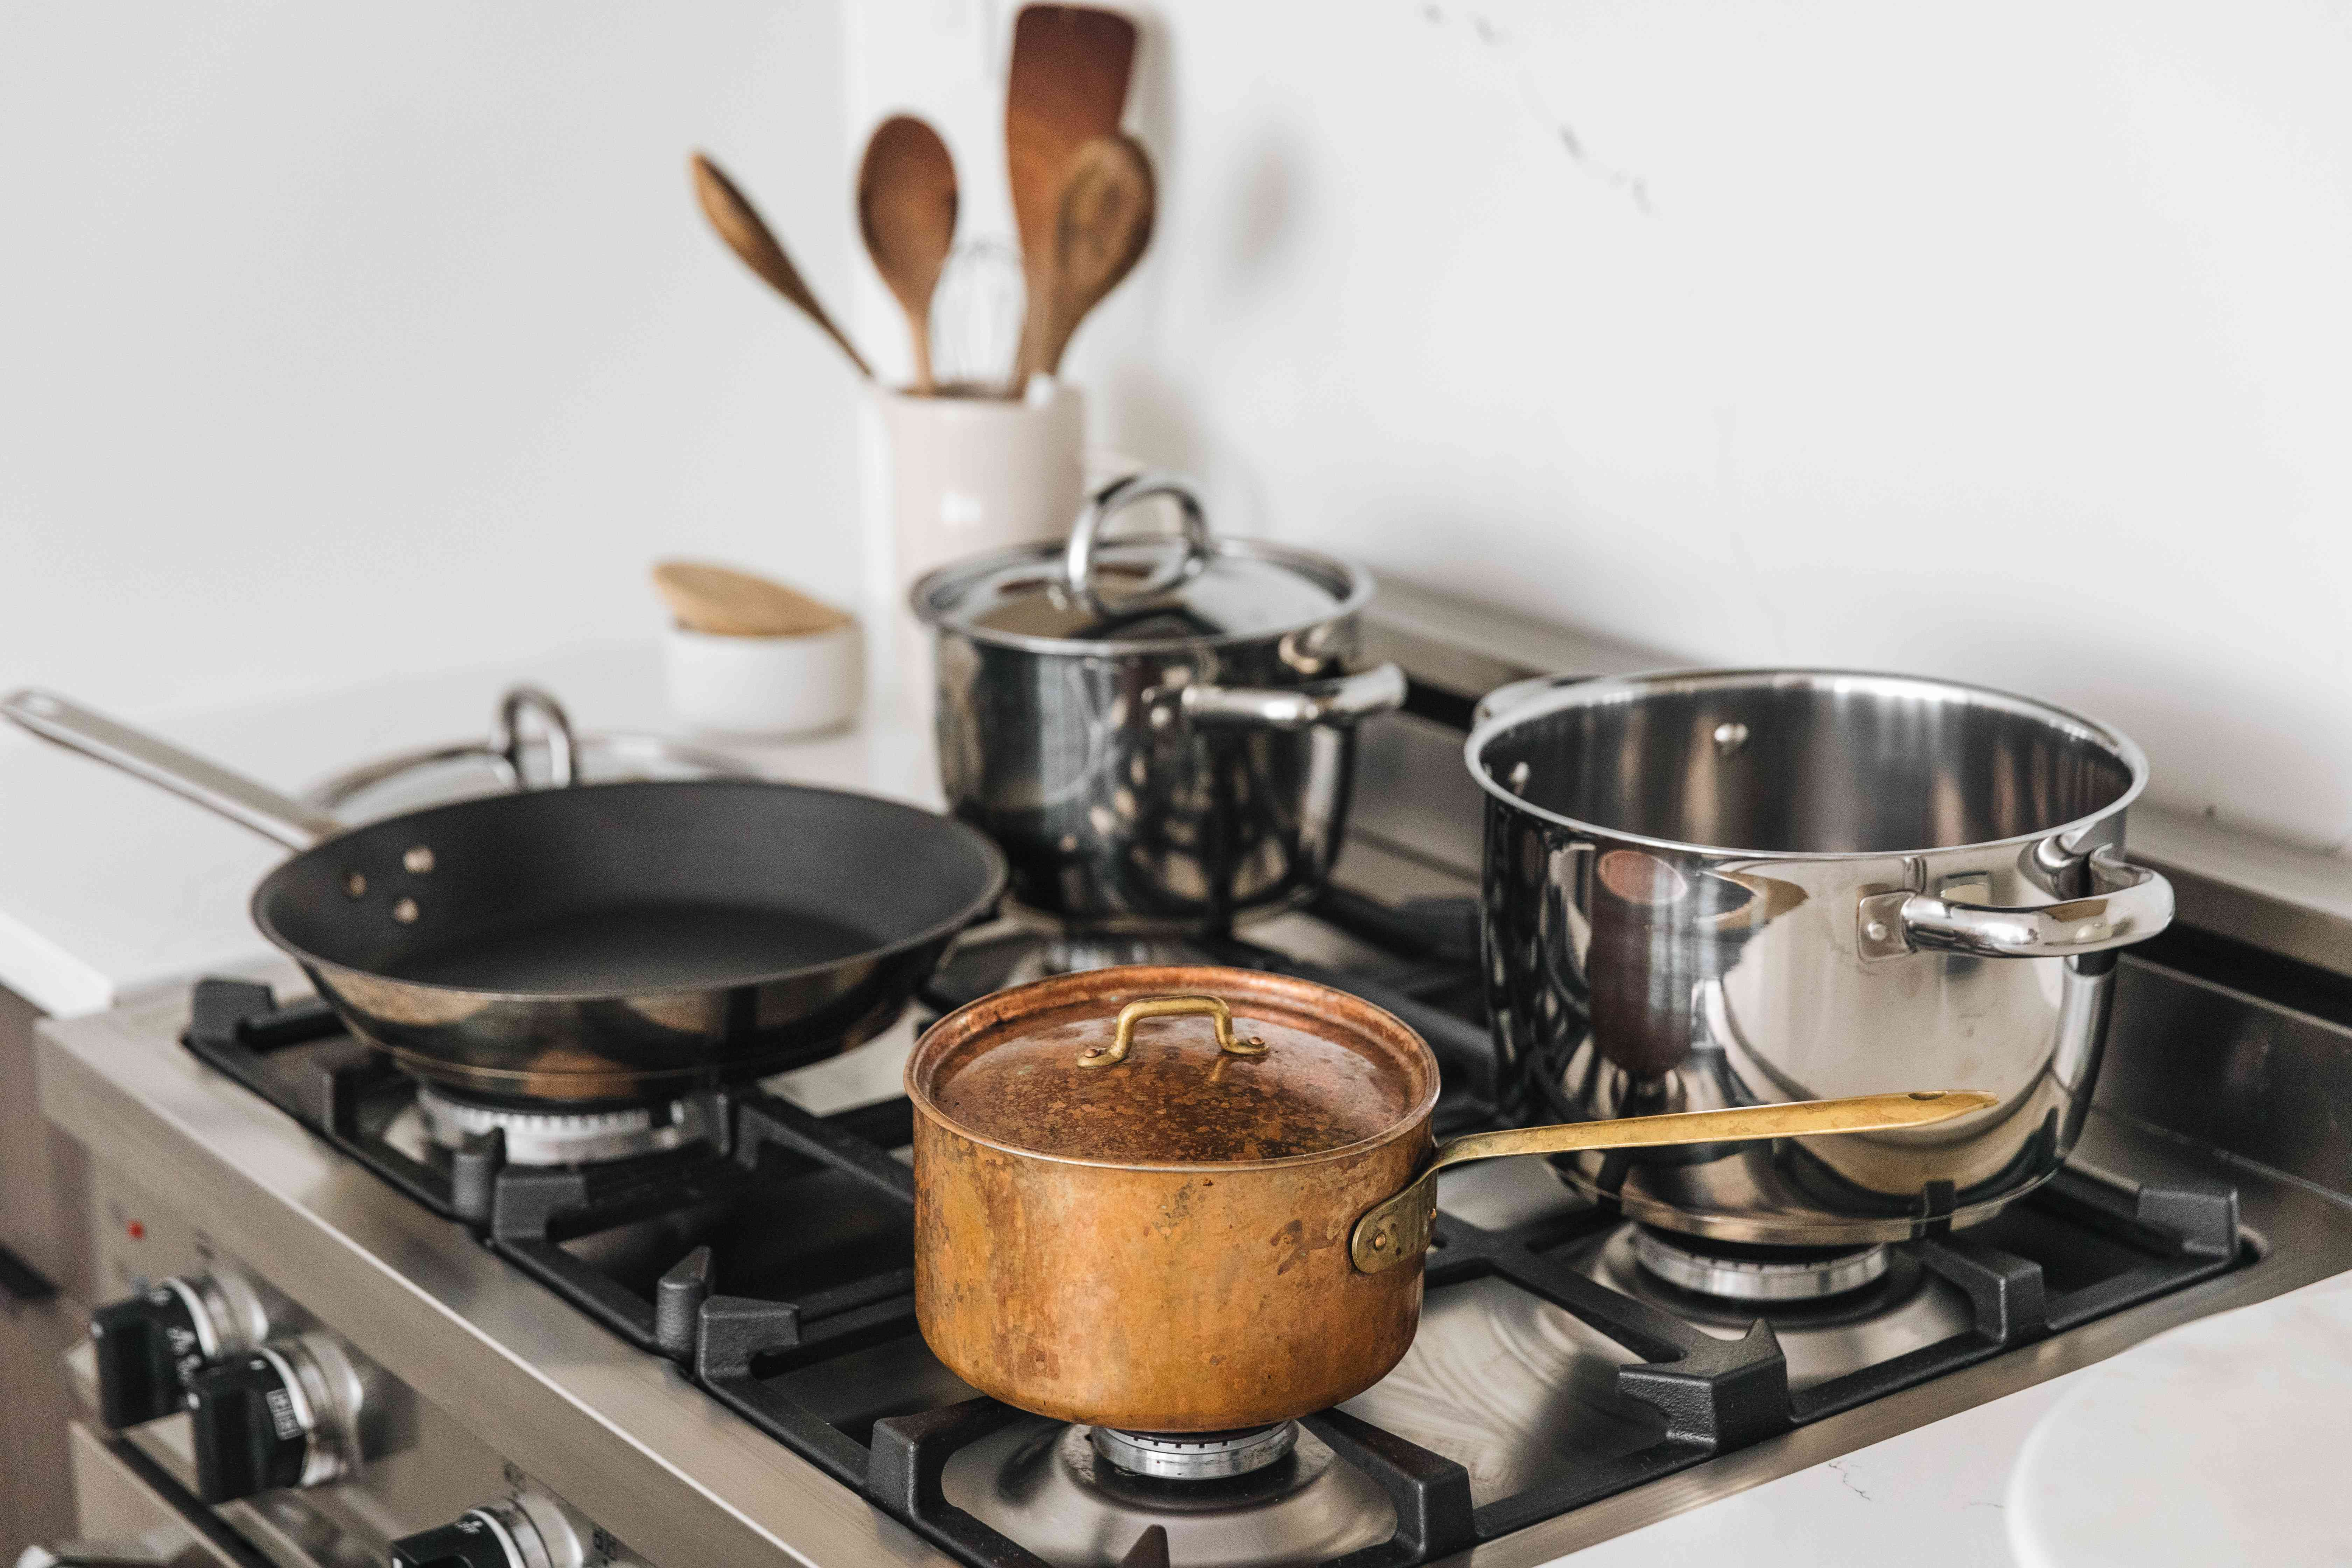 stovetop items